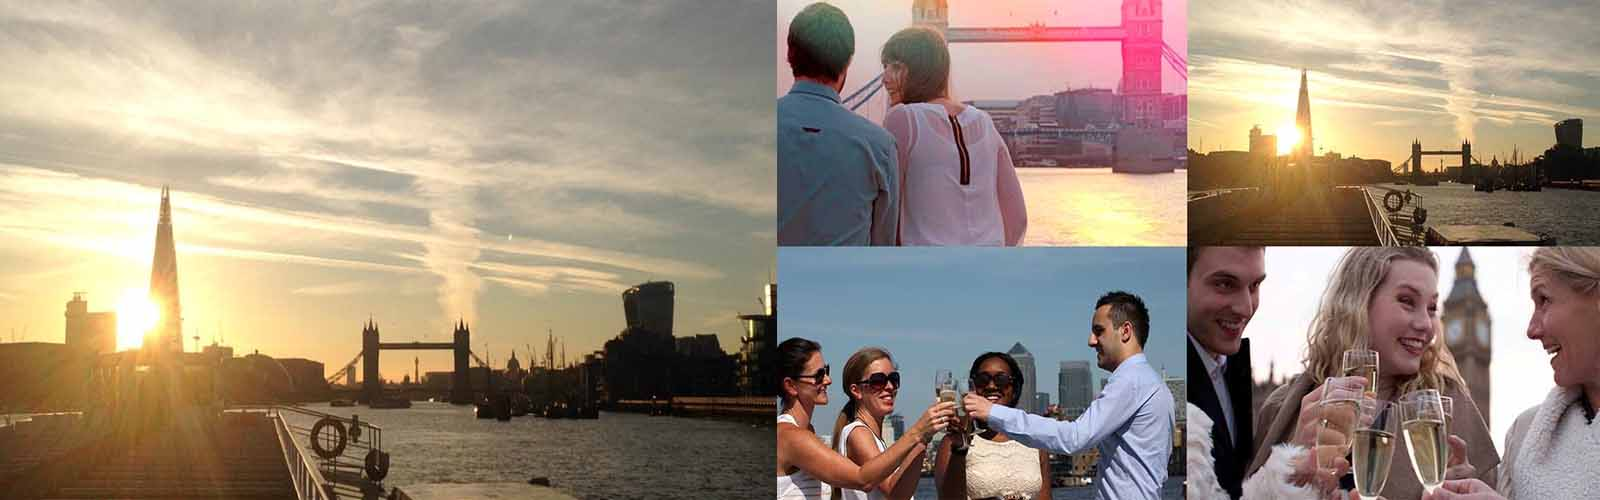 Explore London with the Sundowner Boat Cruise and receive free bottle of champaign and free snacks